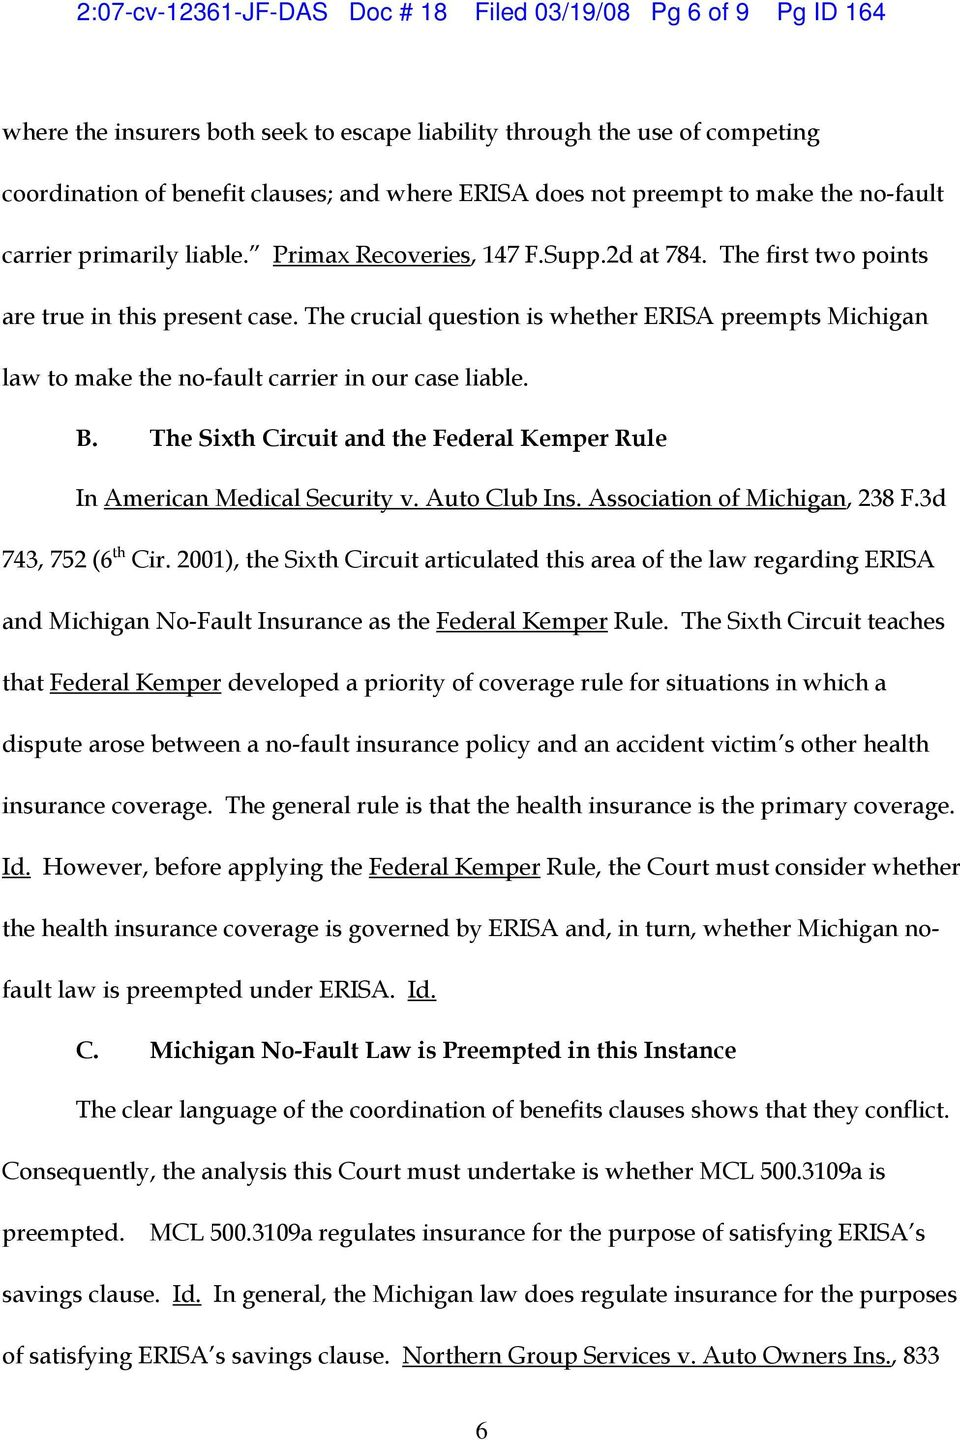 The crucial question is whether ERISA preempts Michigan law to make the no-fault carrier in our case liable. B. The Sixth Circuit and the Federal Kemper Rule In American Medical Security v.